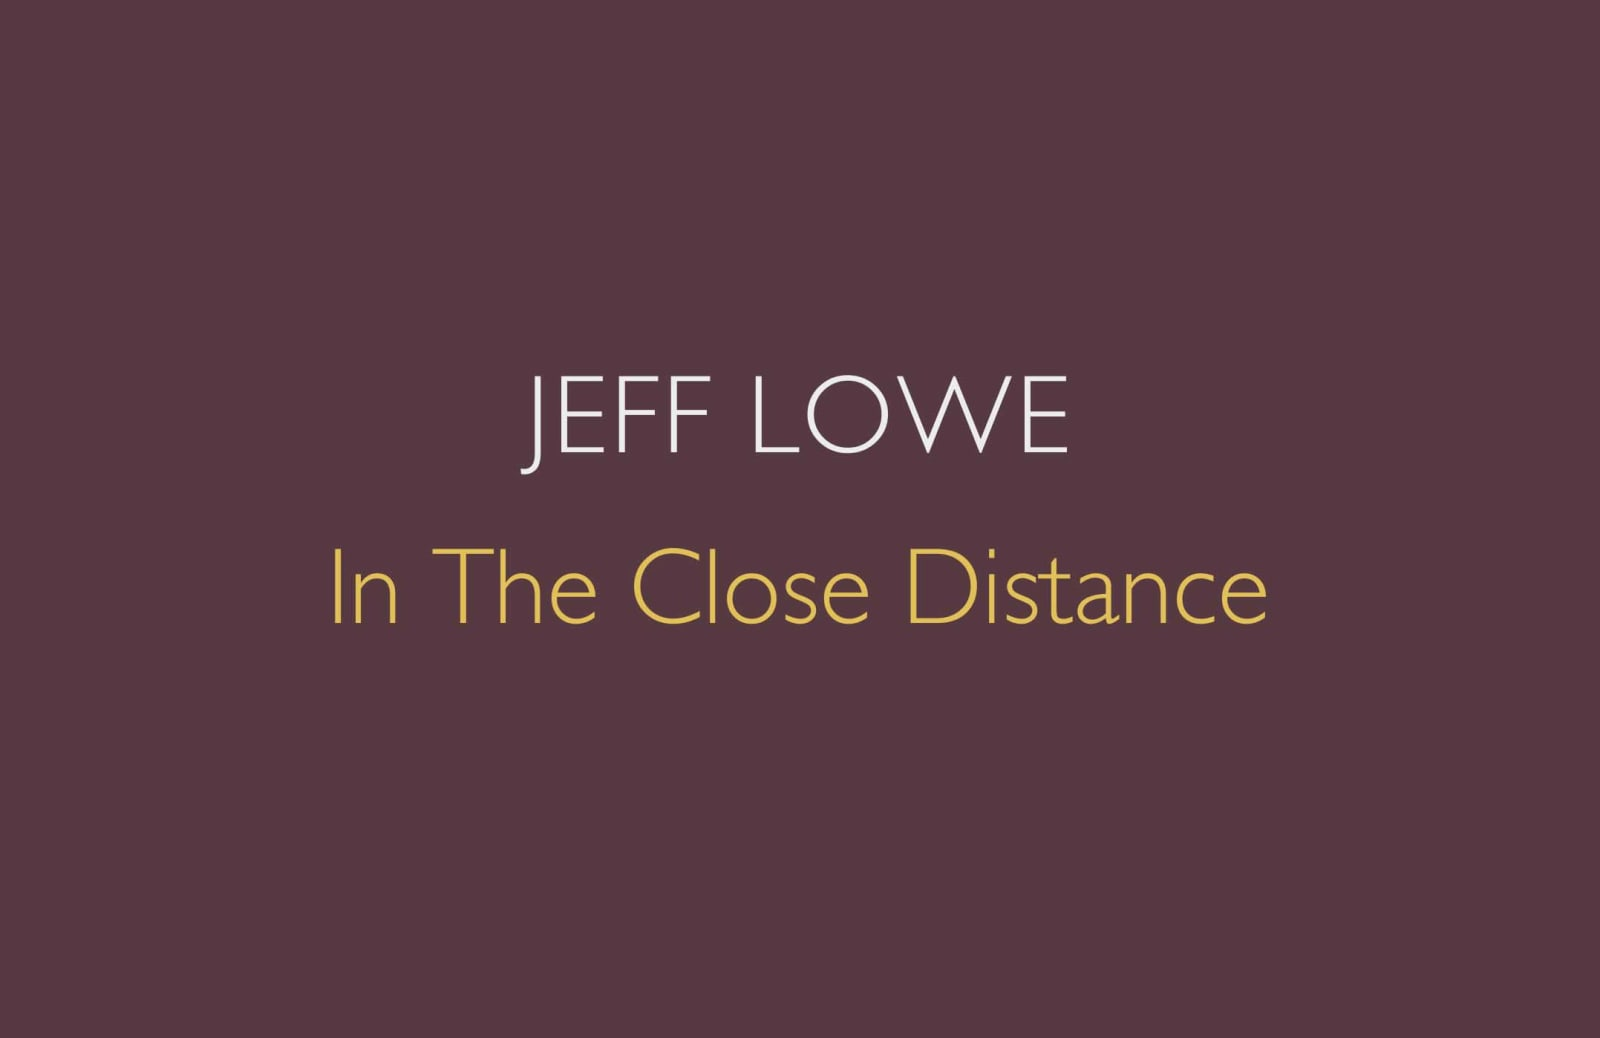 NEW PUBLICATION Jeff Lowe: In The Close Distance is available now to order in the gallery.